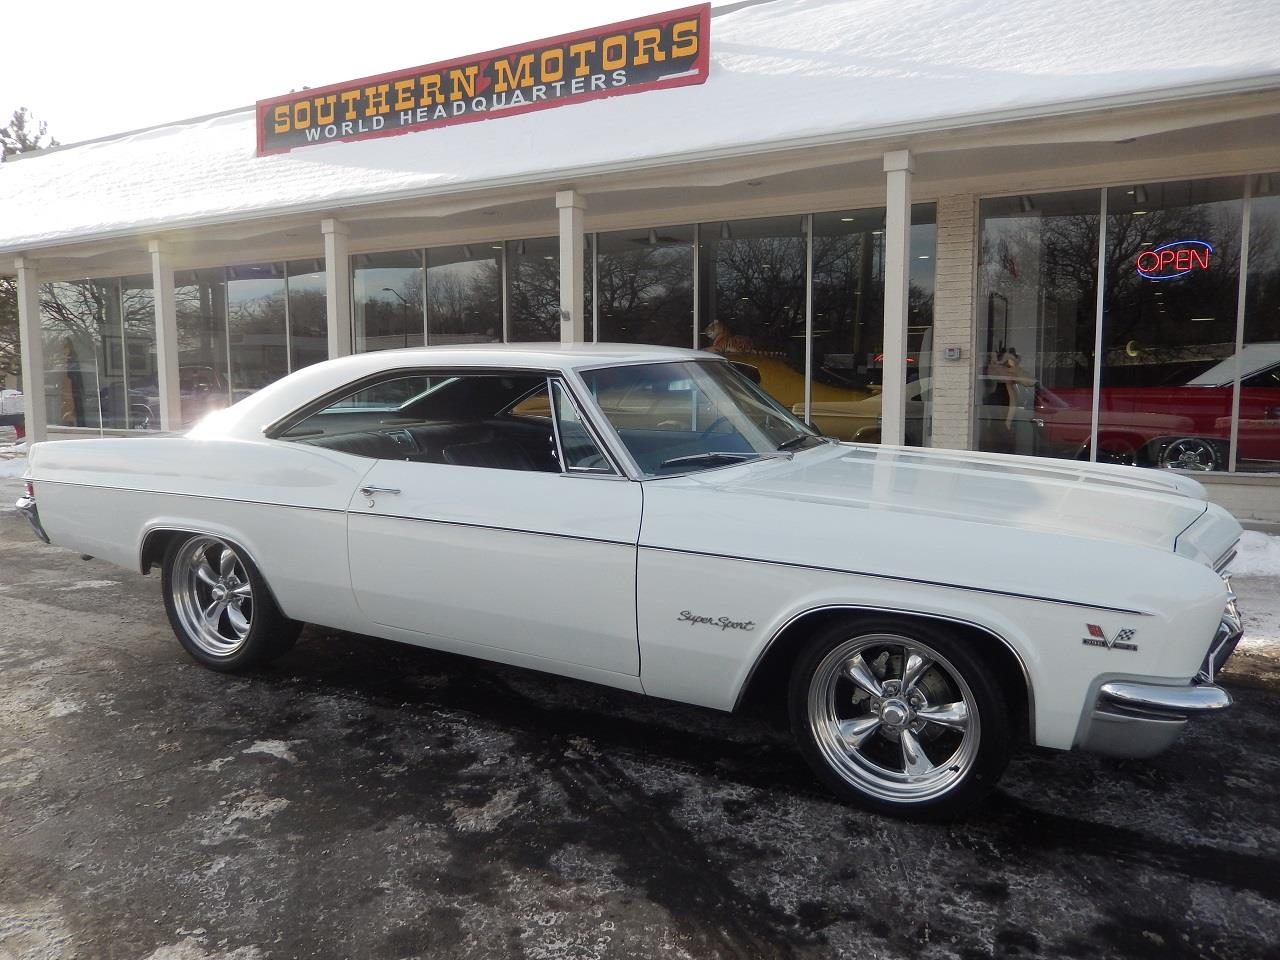 1966 Chevrolet Impala Ss For Sale Cc 1053641 Super Sport Large Picture Of 66 Mkzt